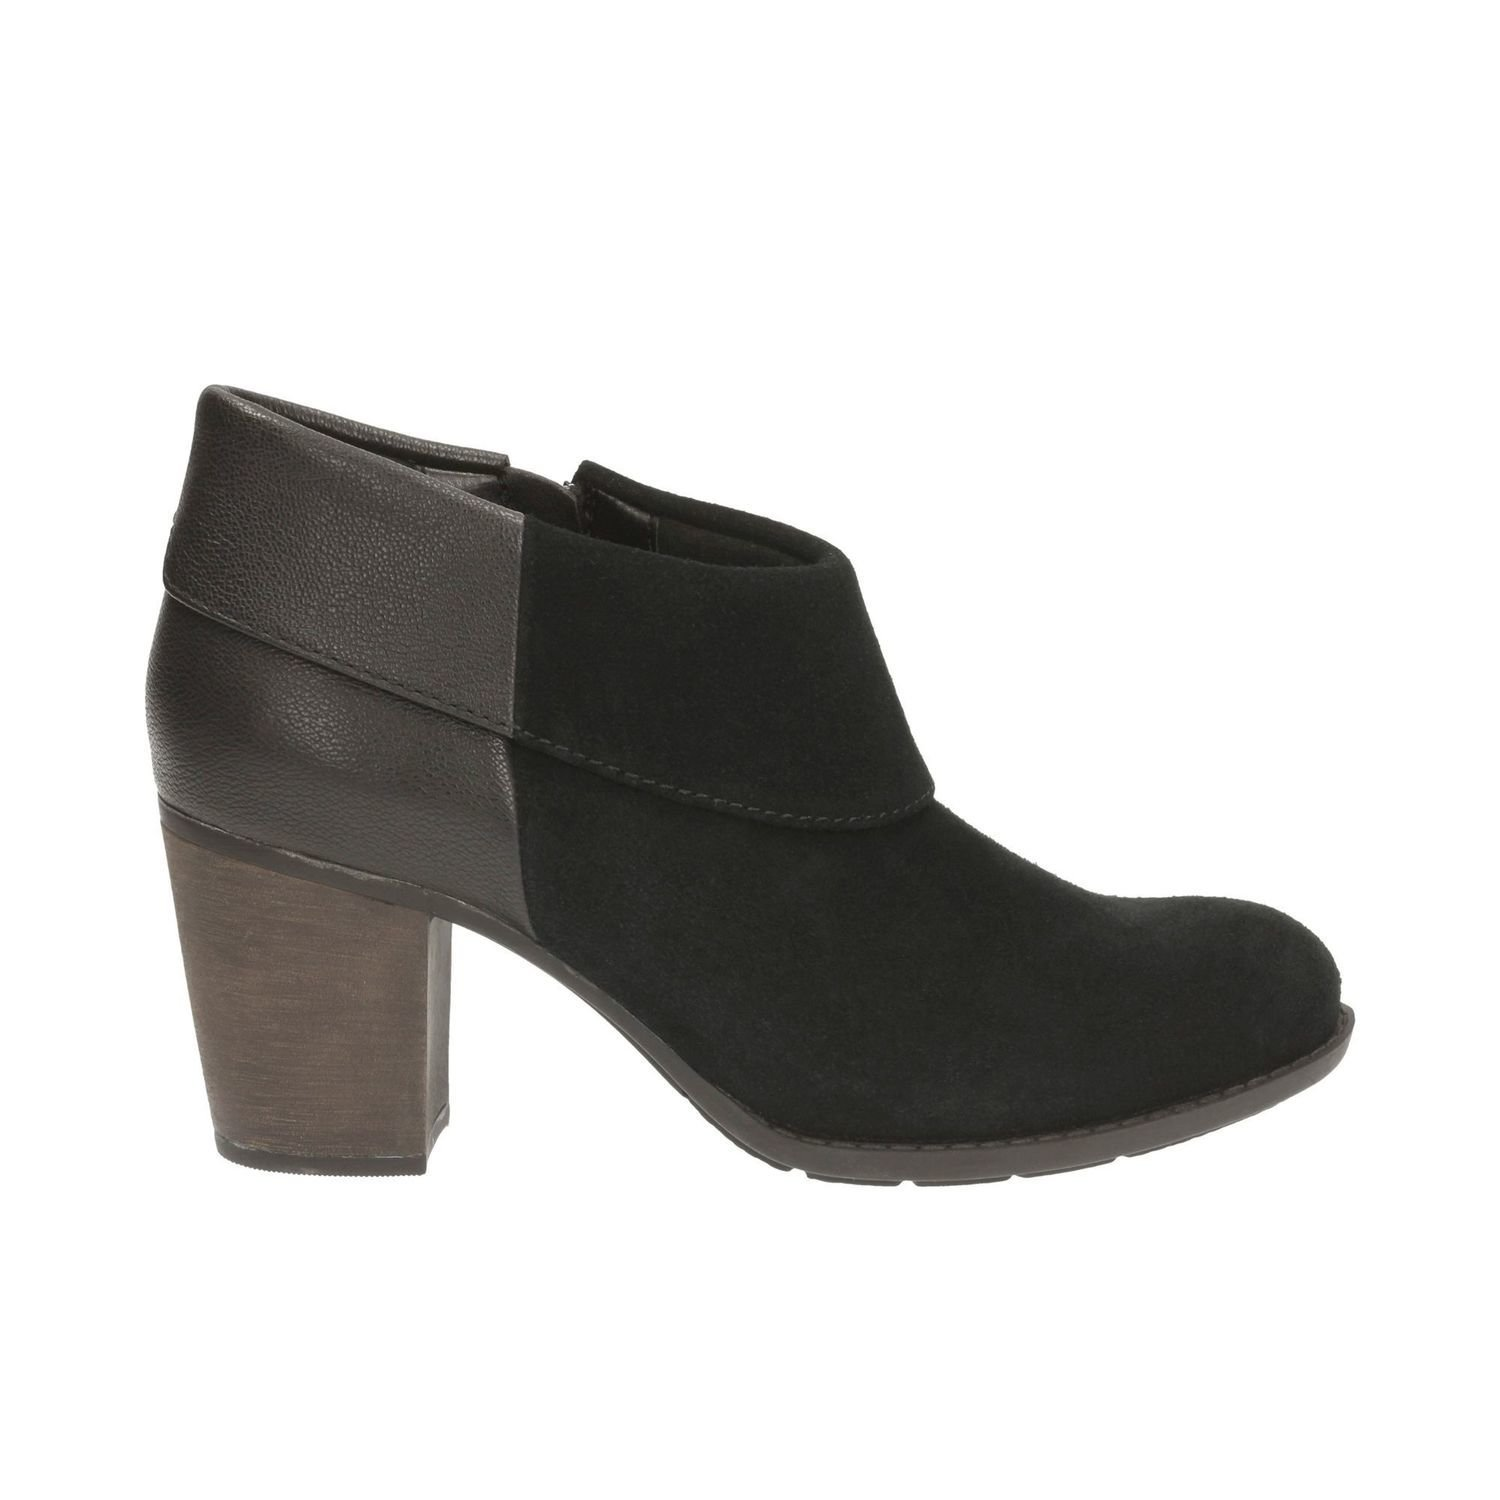 Botas Enfield Canal Negro TN-2380484